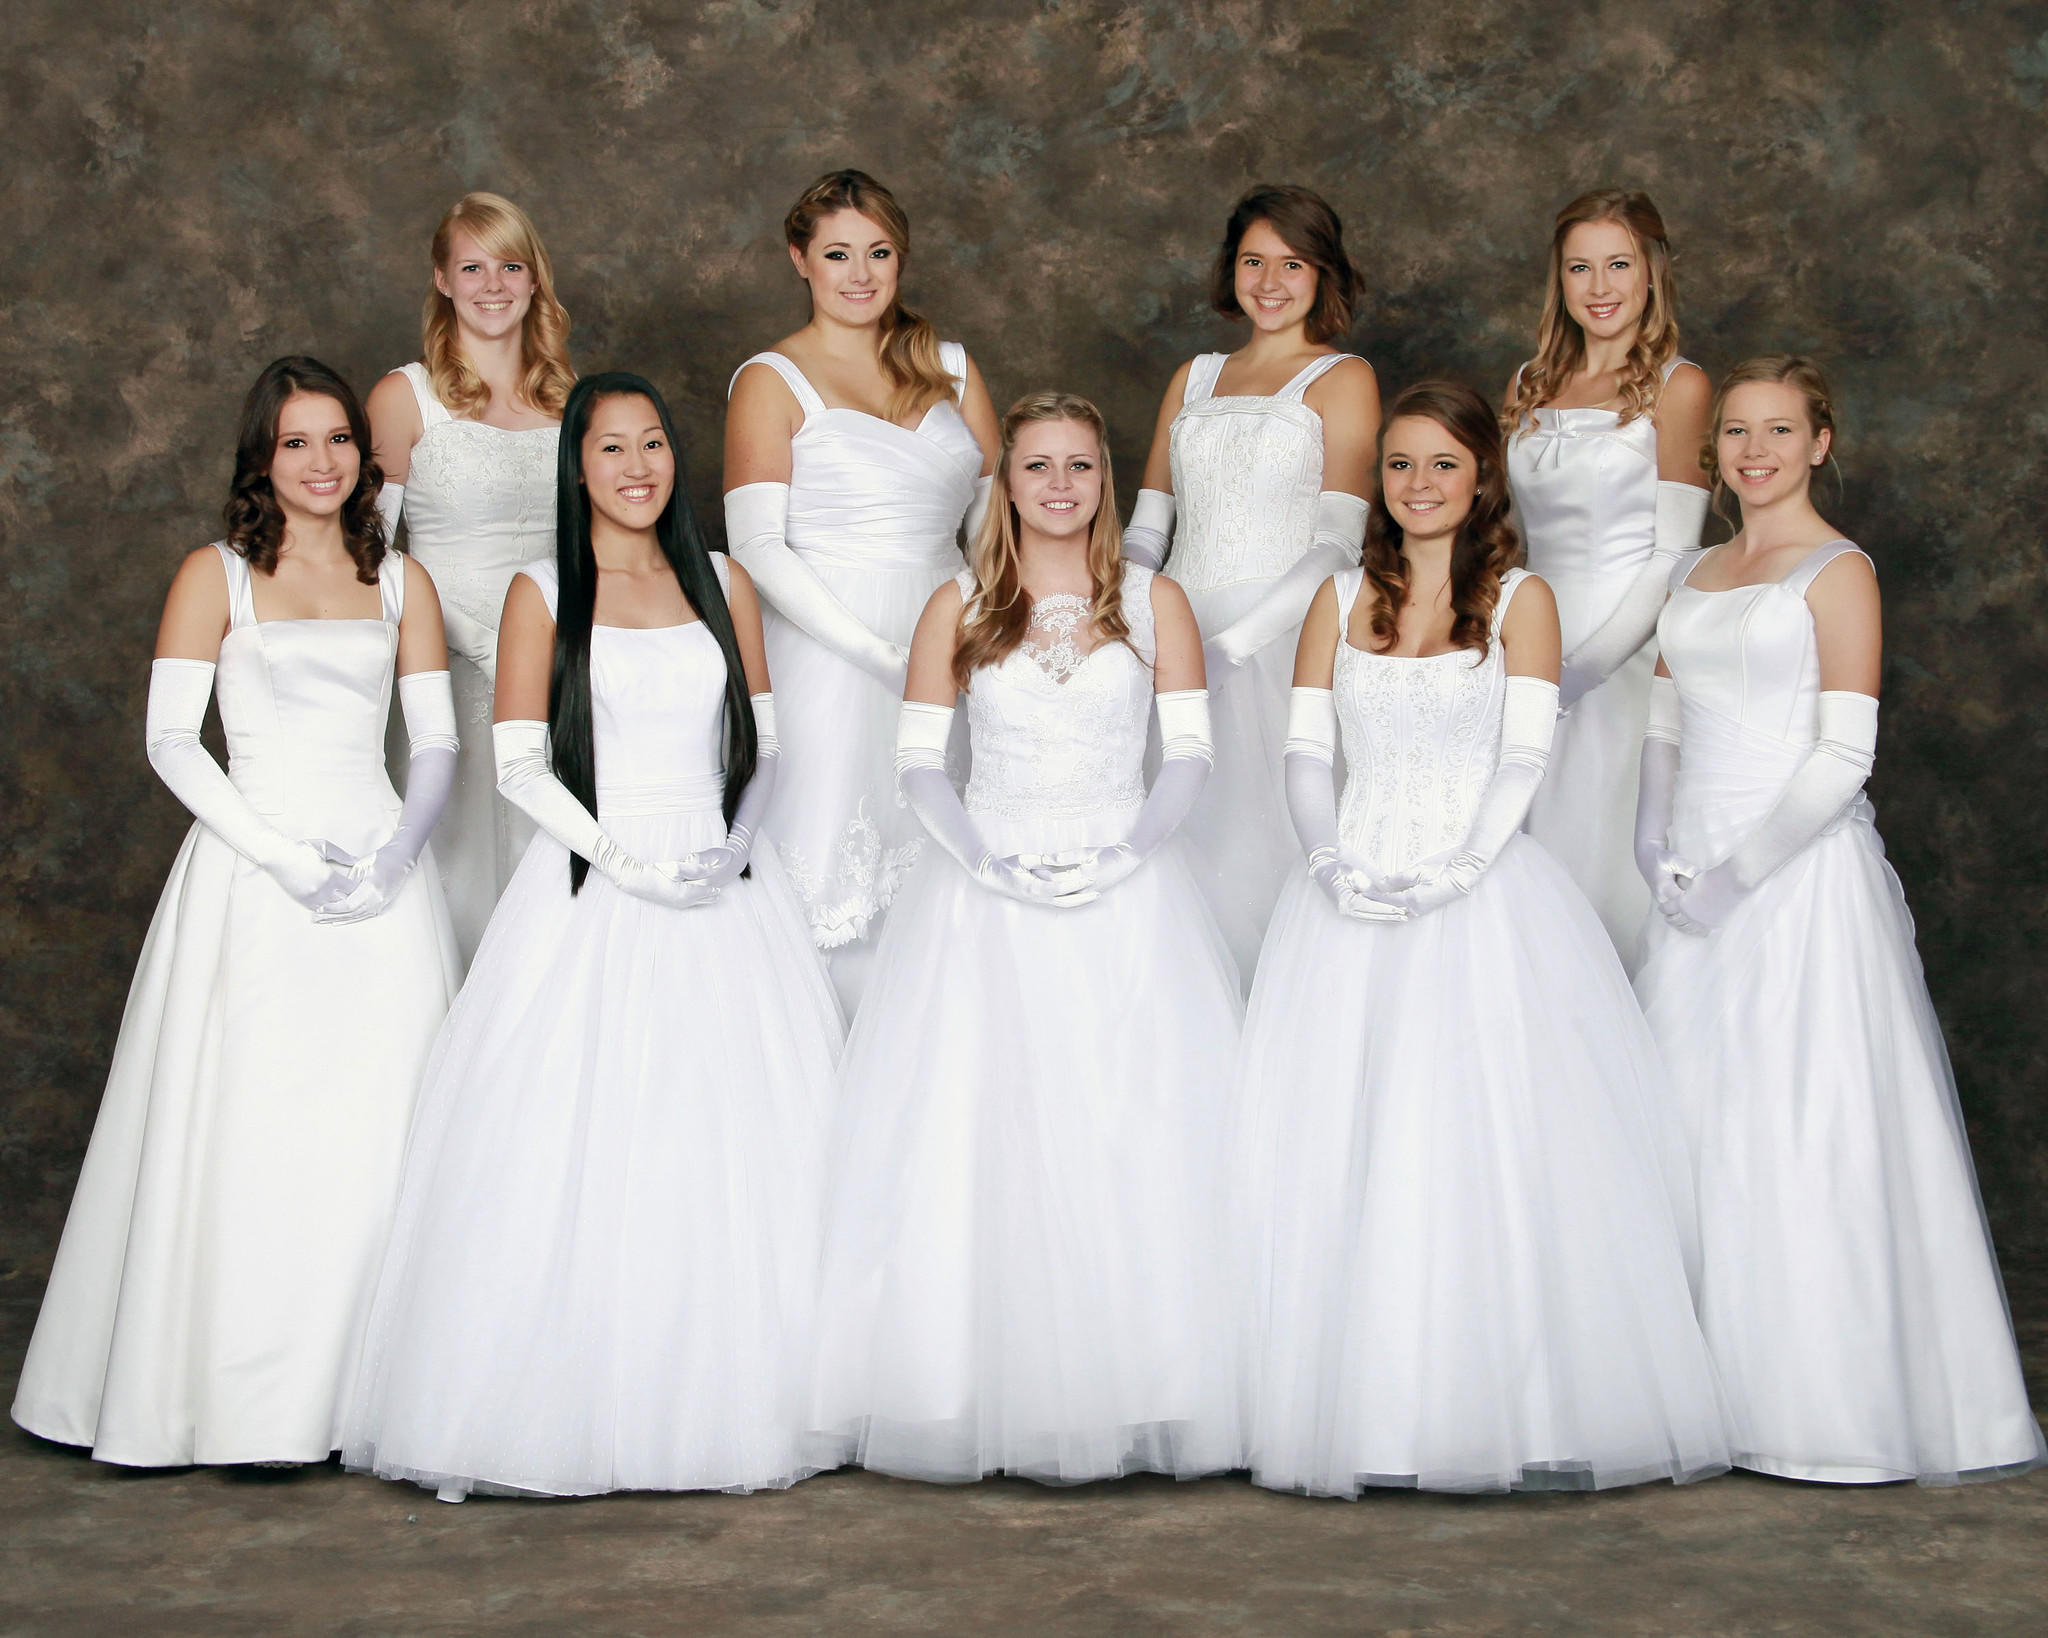 Some of the 2013 Les Fleurettes preparing for the Bal Blanc de Noel Saturday night are (front row, left to right) Shannon Ritter, Adelle Higley, Grace Vallen, Alessandra Koeppen, and Madelyn Merchant. (back row, left to right) Tracey Andrews, Charlotte Leddie, Galey Caverly and Haley Johnson.